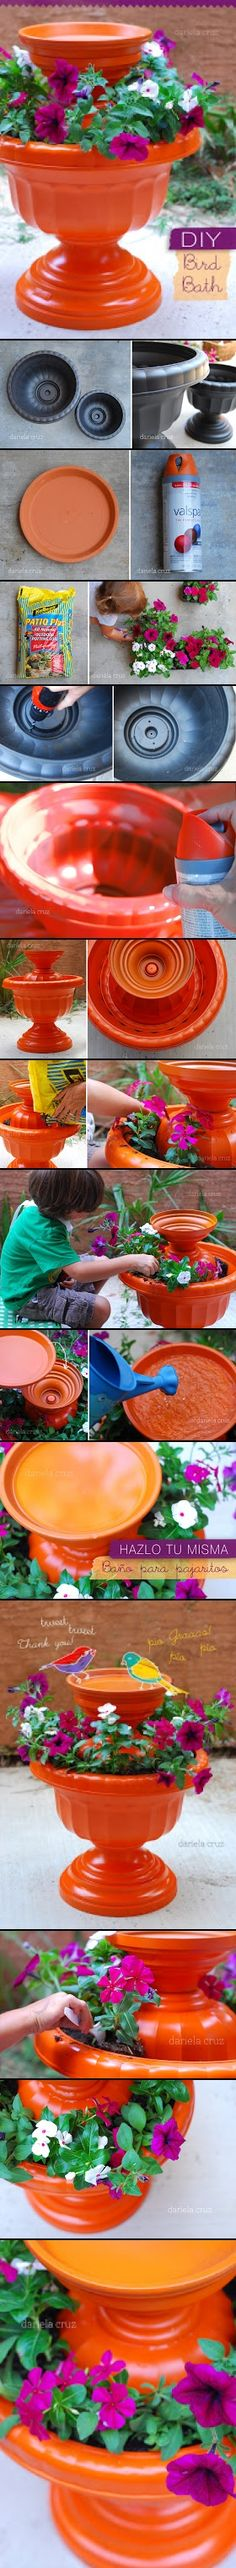 DIY Birdbath planter, but instead of planter make a fountain